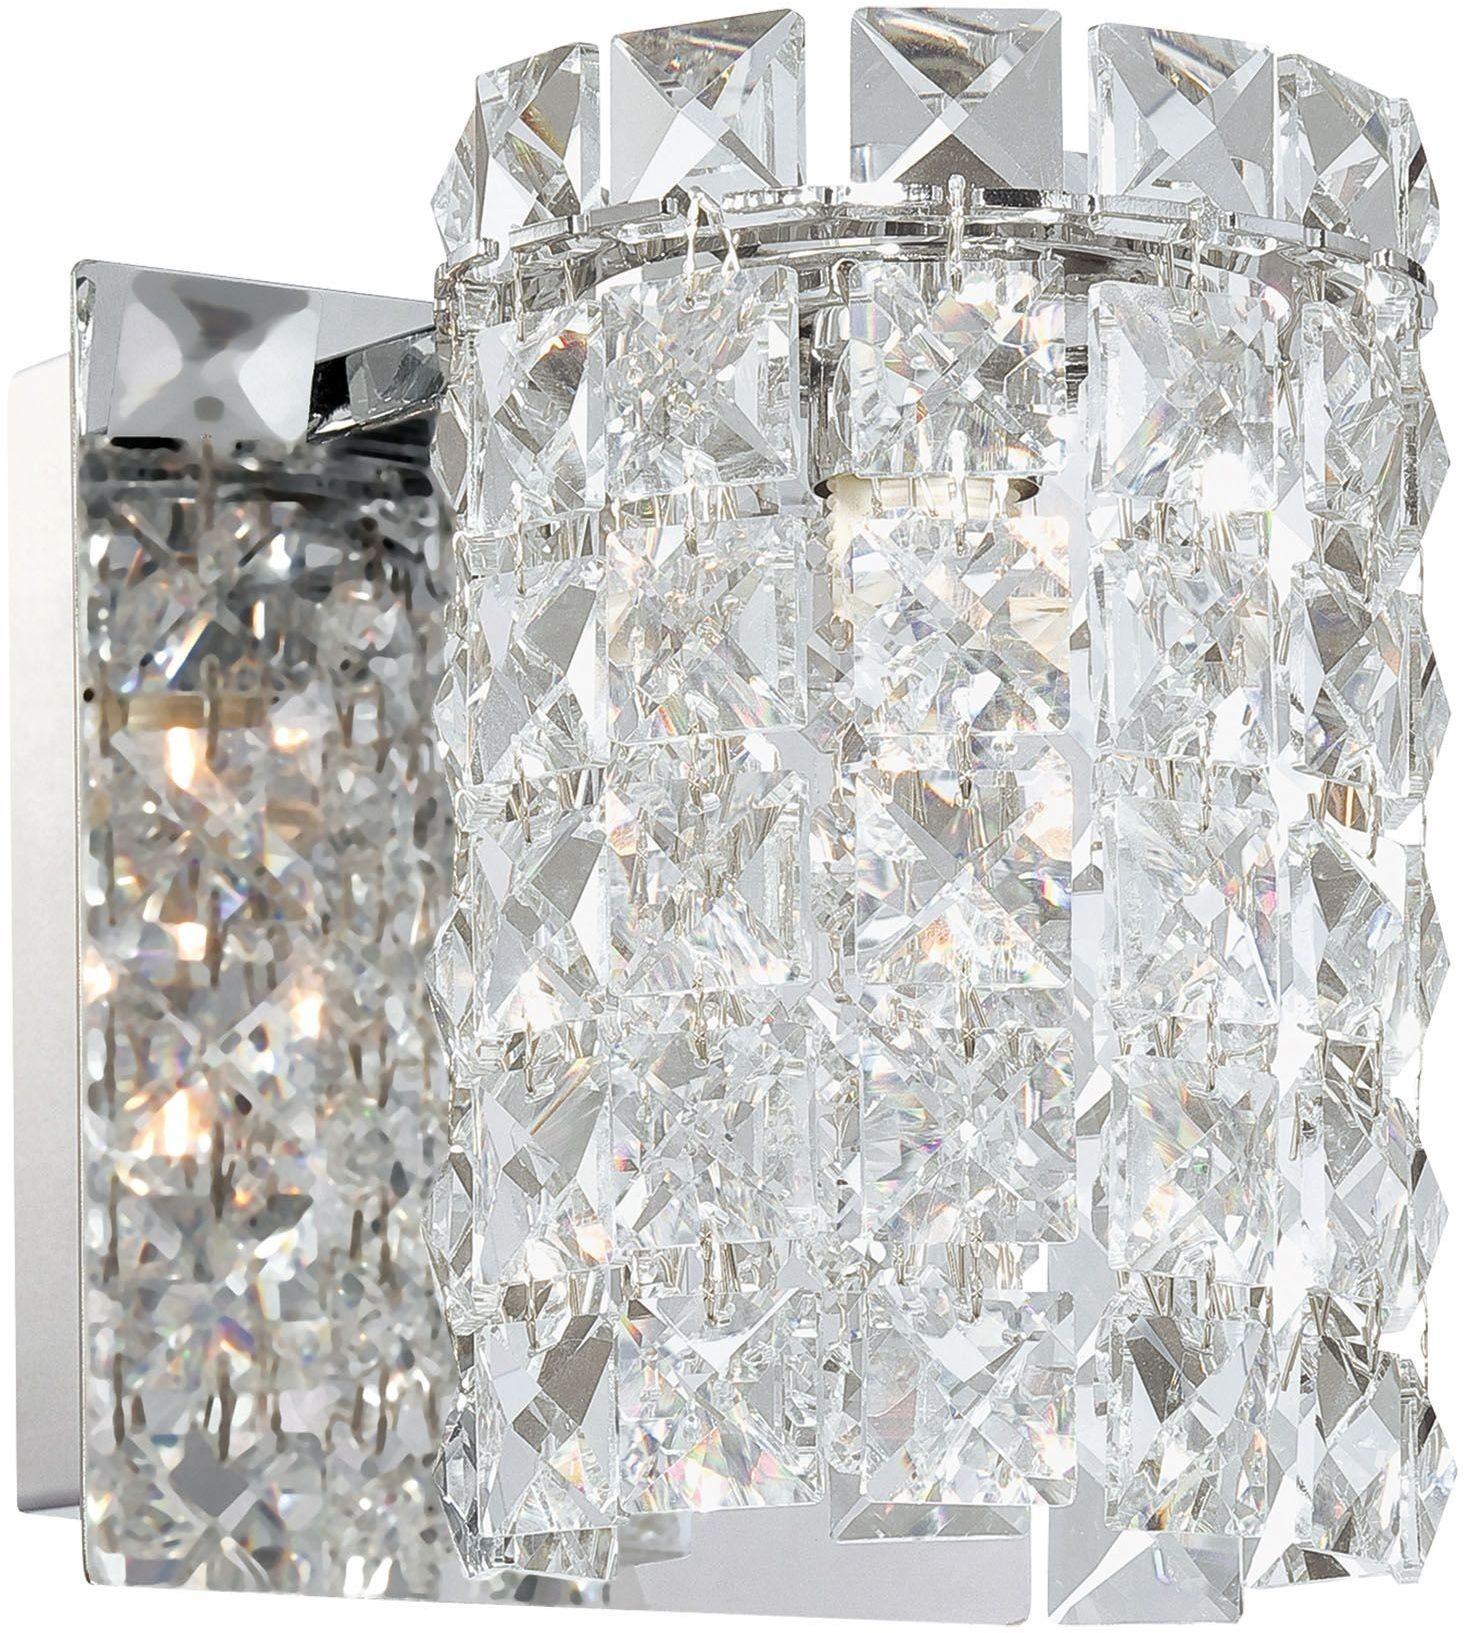 Queen 1 Chrome And Clear Crystal Glass Light Vanity, BV1301-0-15, Alico